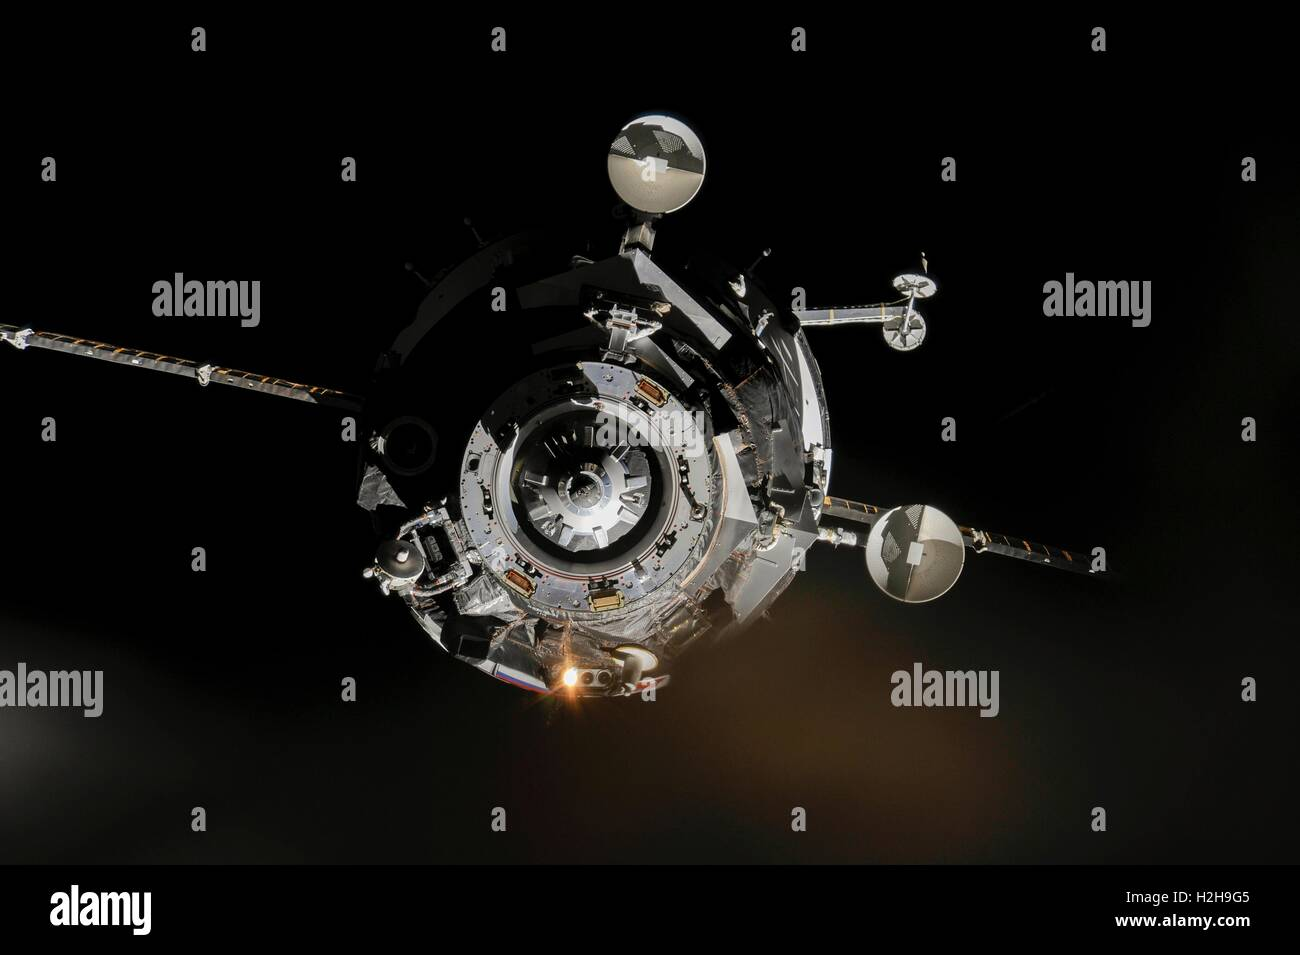 The Soyuz TMA-10M spacecraft approaches the NASA International Space Station September 25, 2013 while in Earth Orbit. - Stock Image